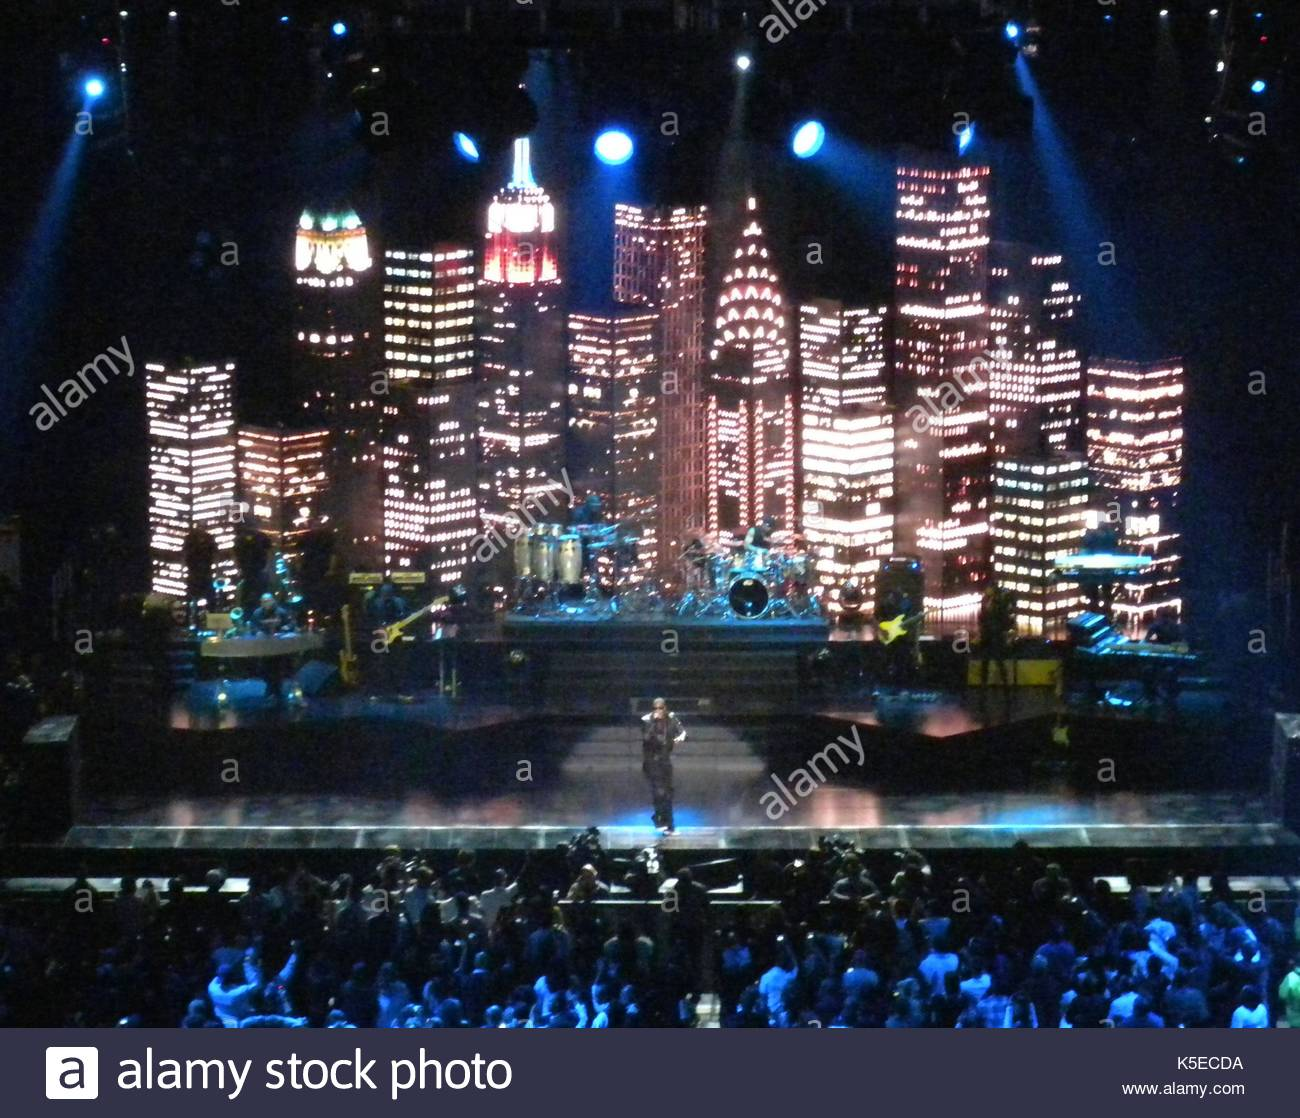 Jay Z Opening NYC Concert For 9 11 At Madison Square Garden. Bryant Park  Fashion Tents In New York City Brings Out More Celebrities Such As Damon  Dash And ...